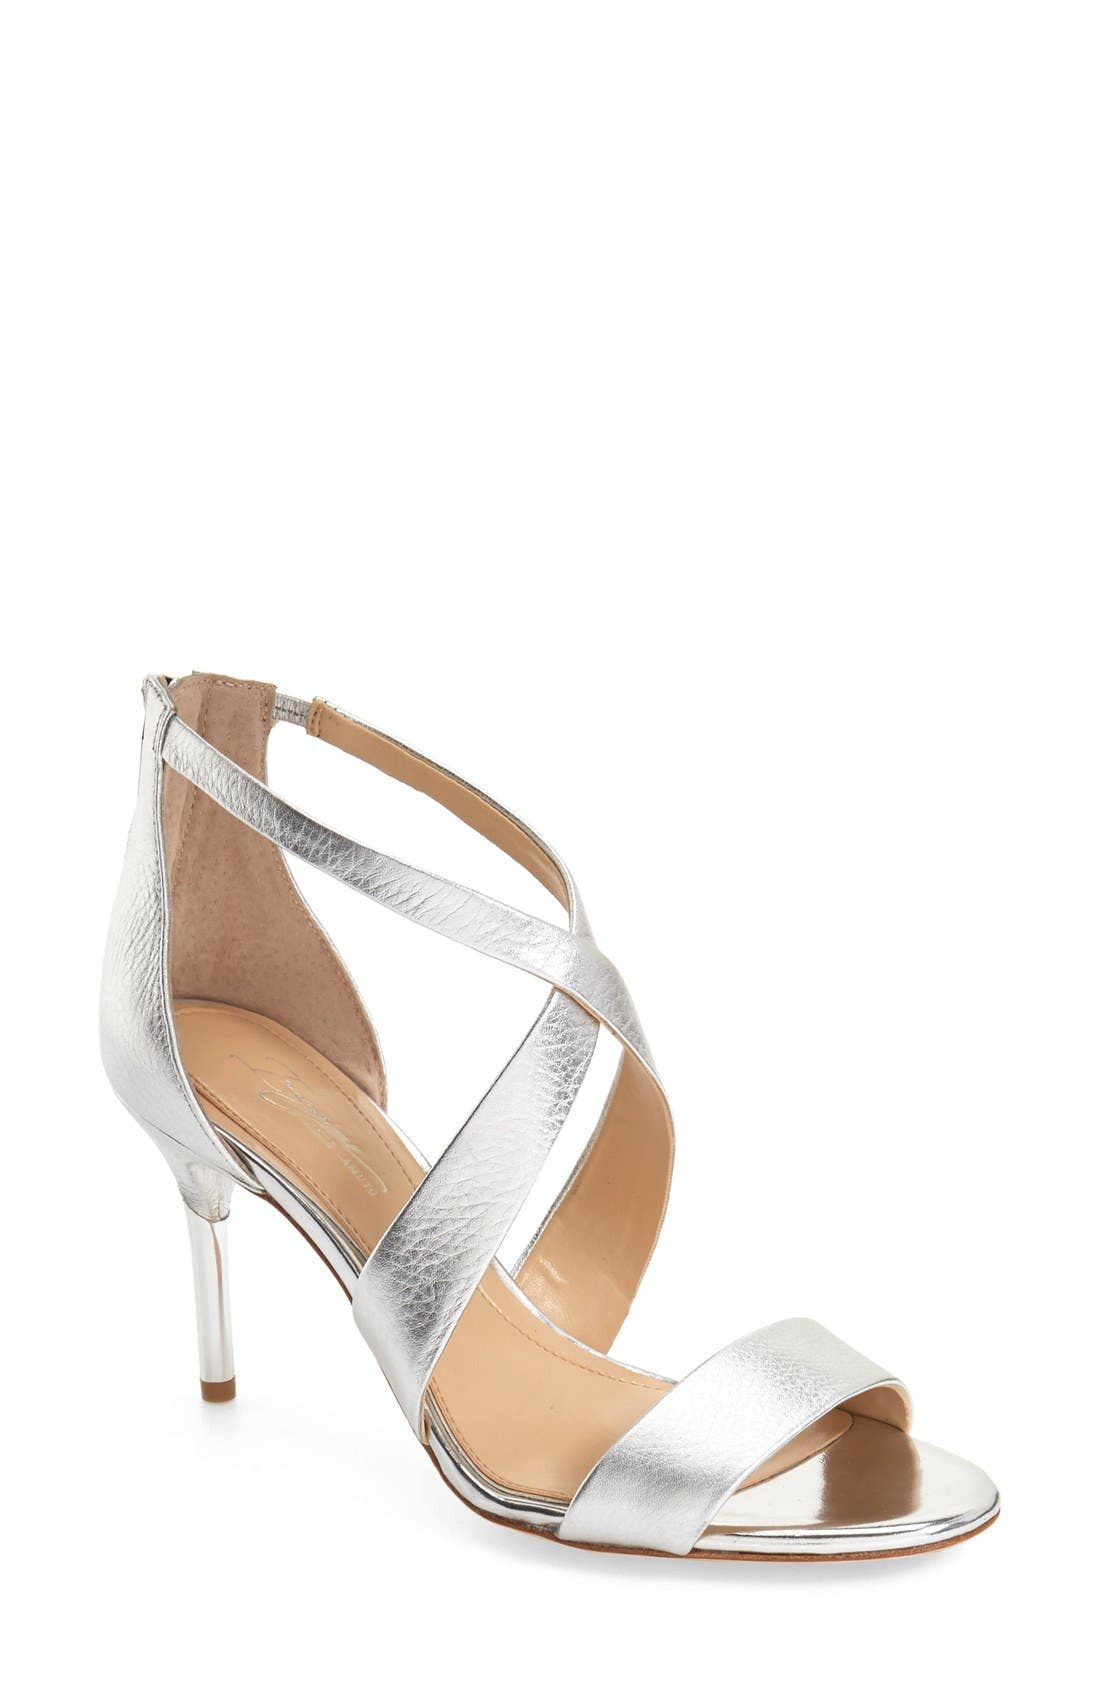 IMAGINE BY VINCE CAMUTO 'Pascal 2' Strappy Evening